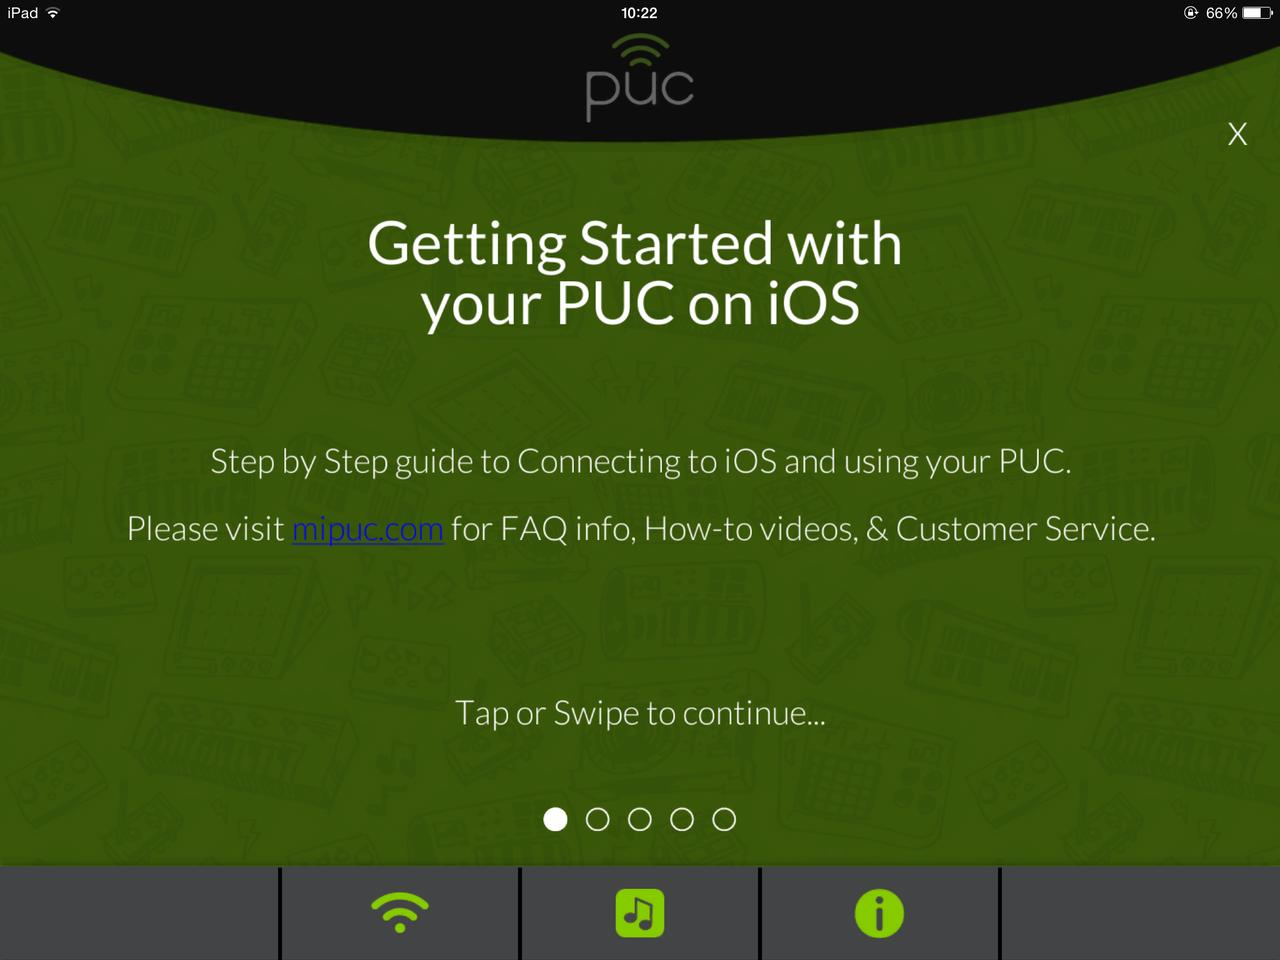 To get started using the device on iOS, the free PUC app must first be downloaded